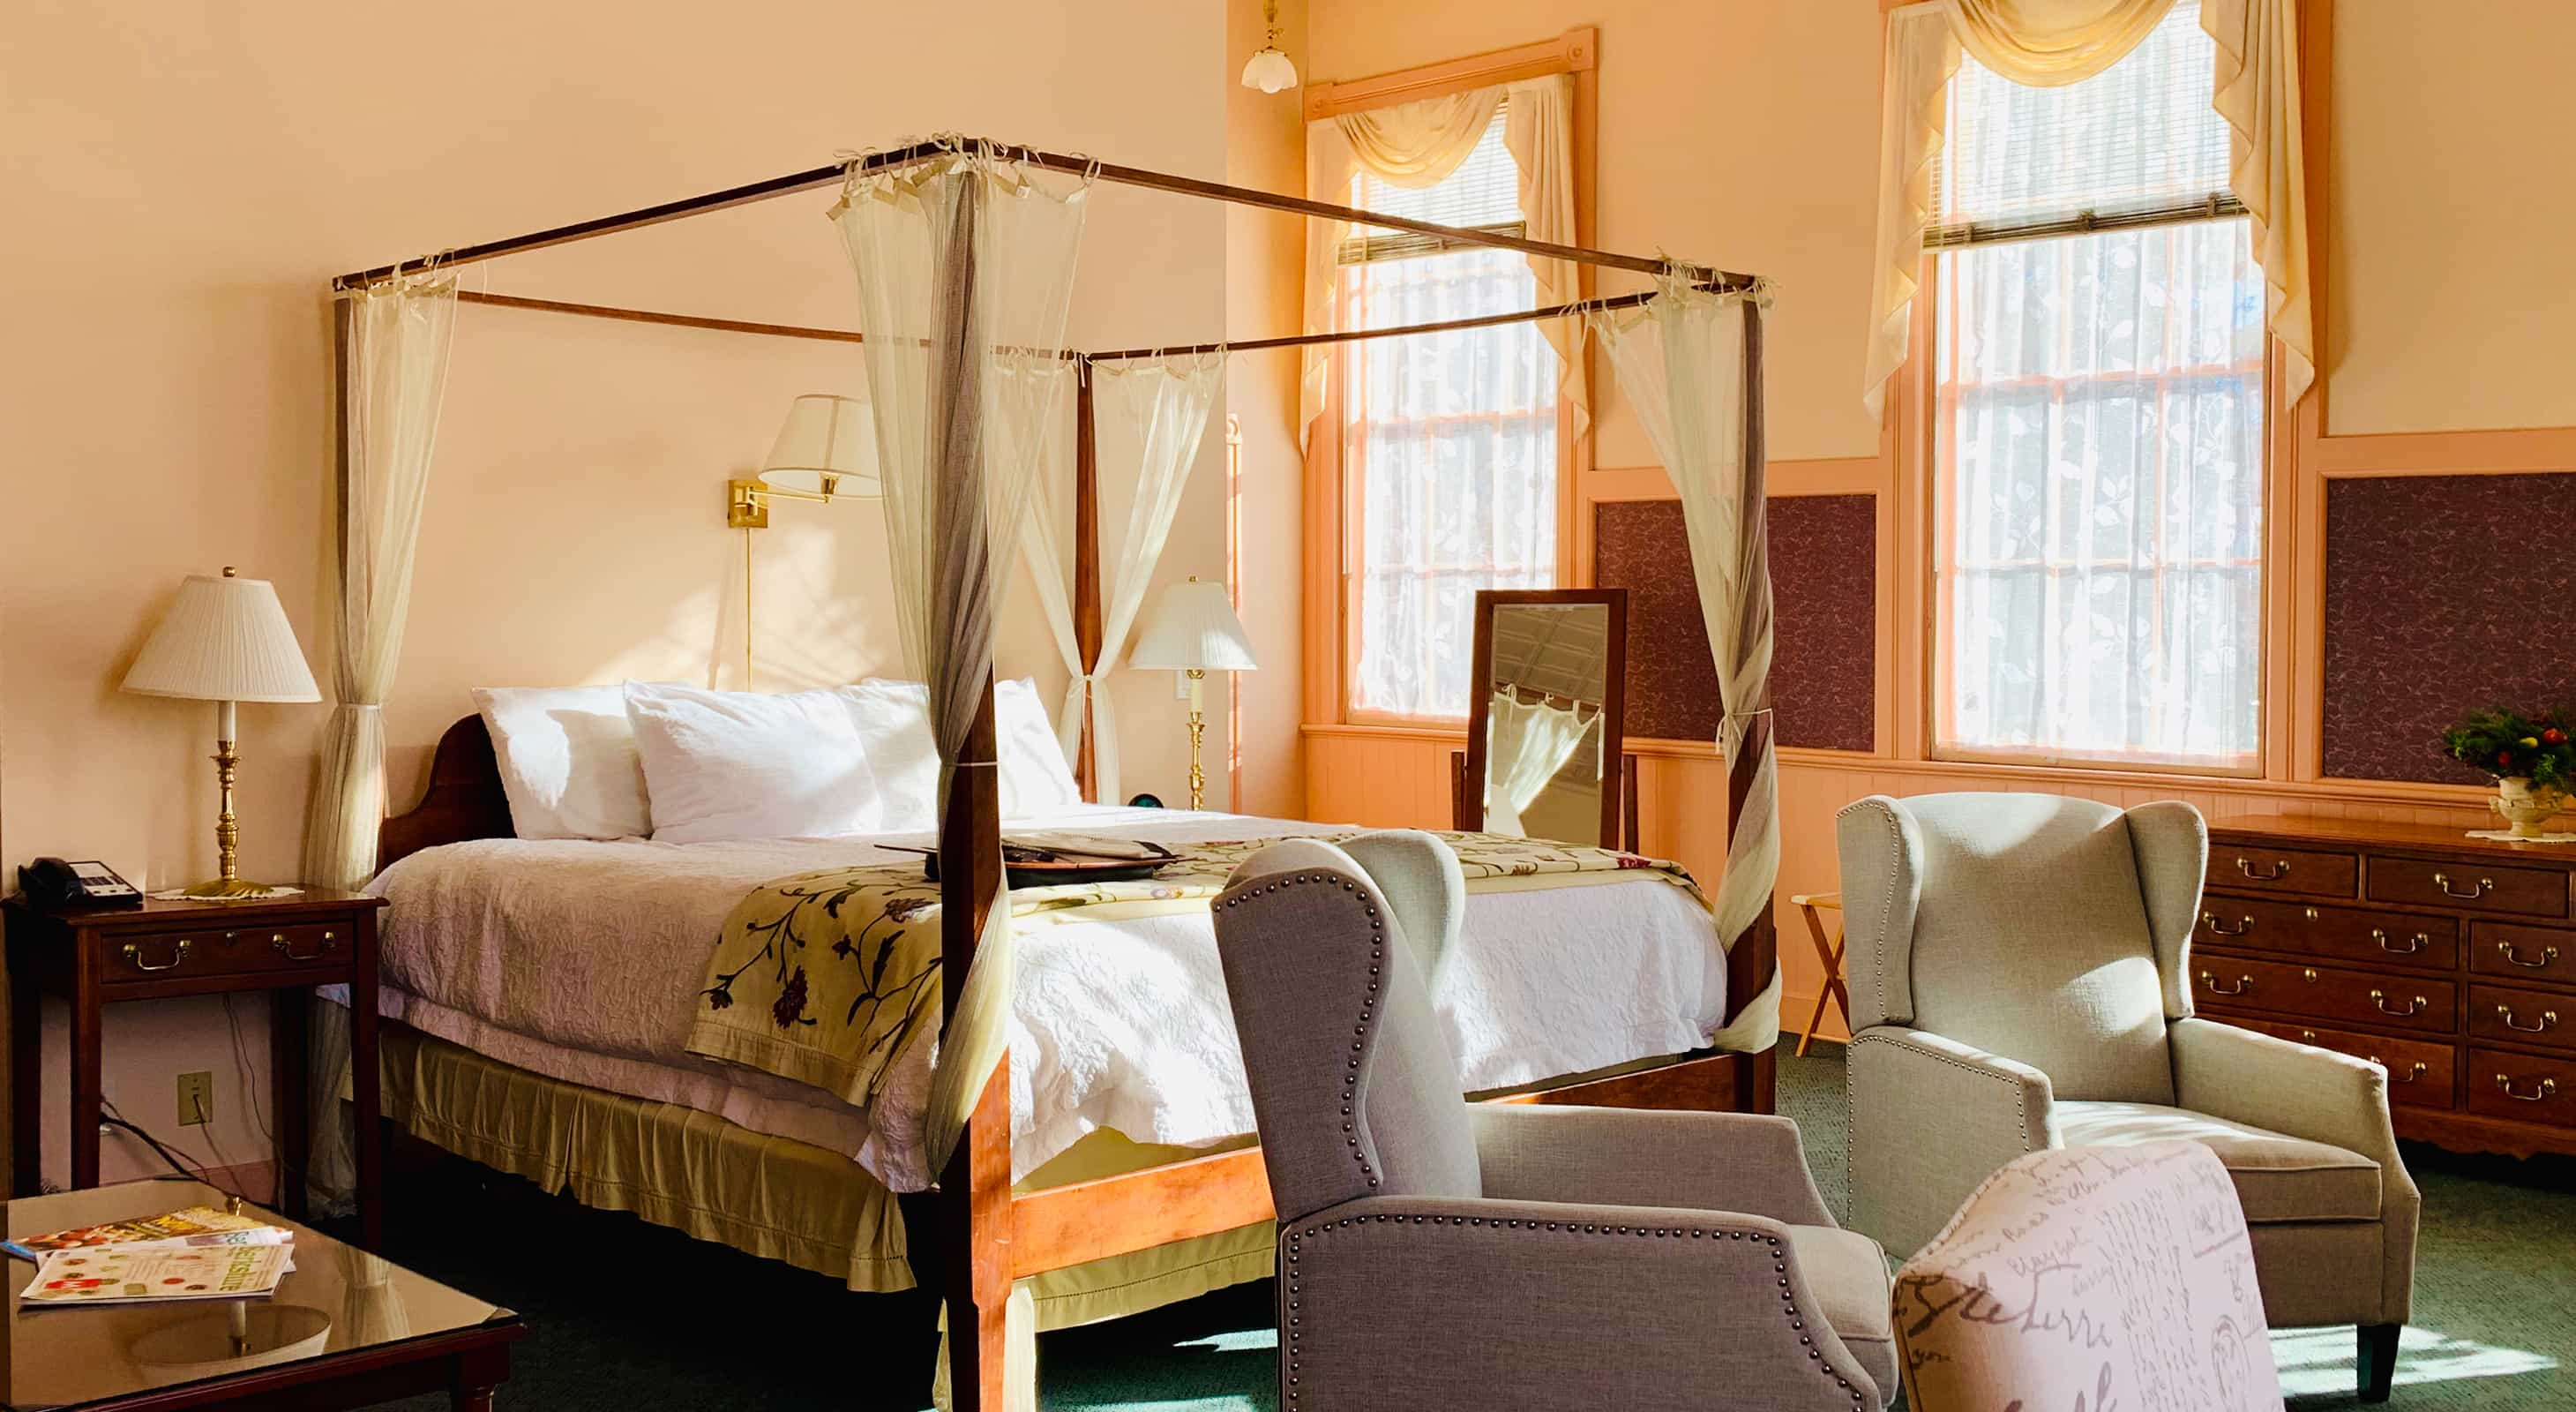 Sunny bed and chairs in the La Chambre room at a Berkshires Bed and Breakfast